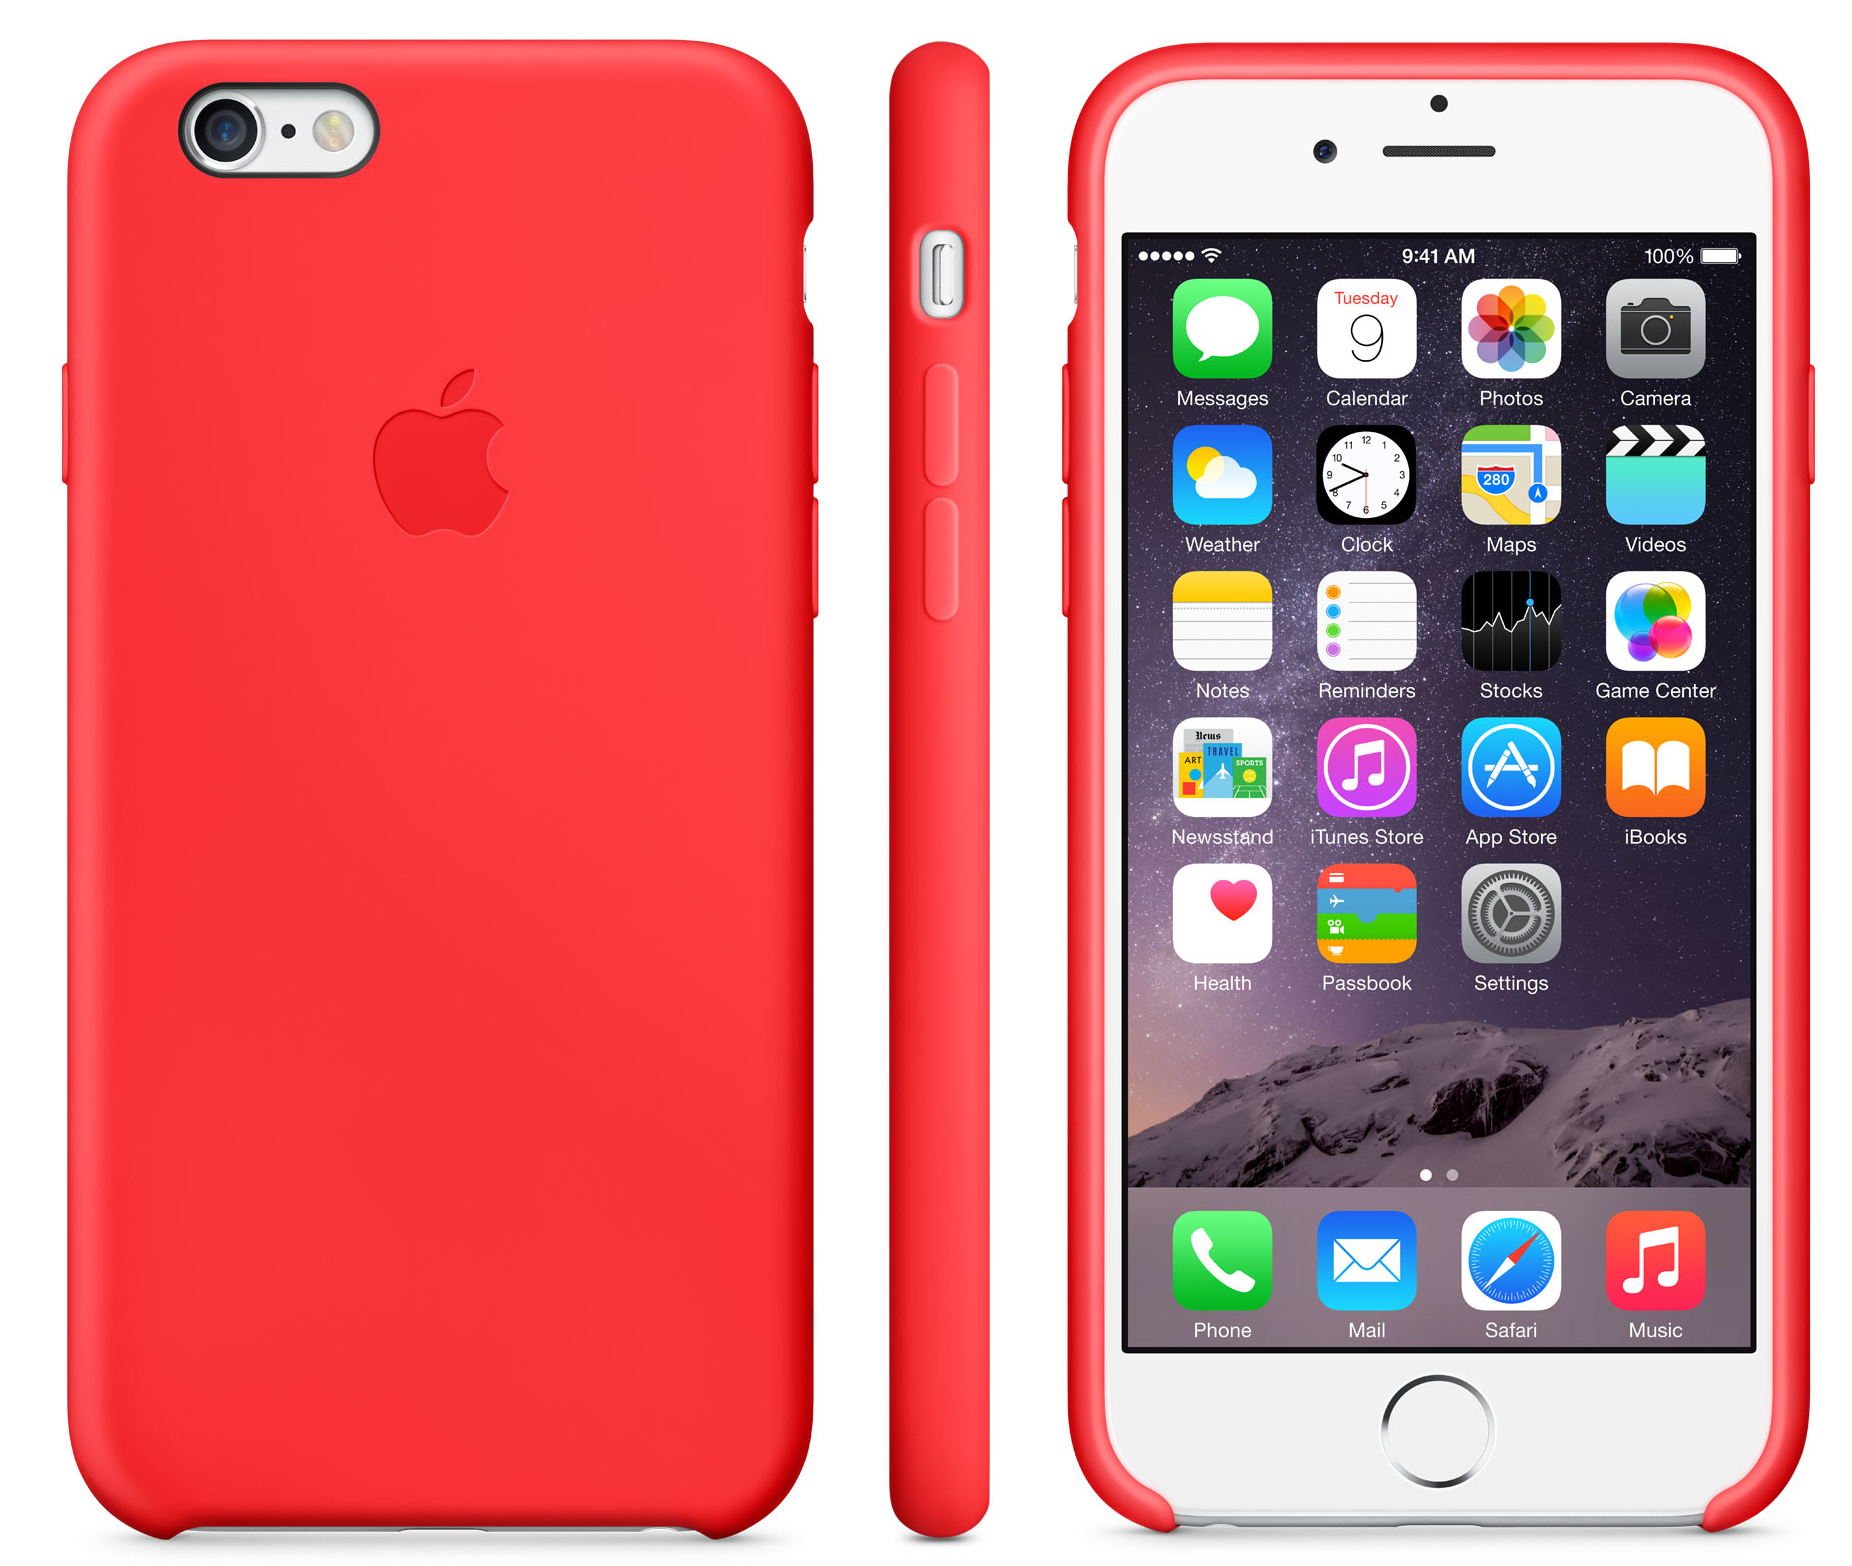 iphone 6 with case apple iphone 6 03 9to5mac 15125